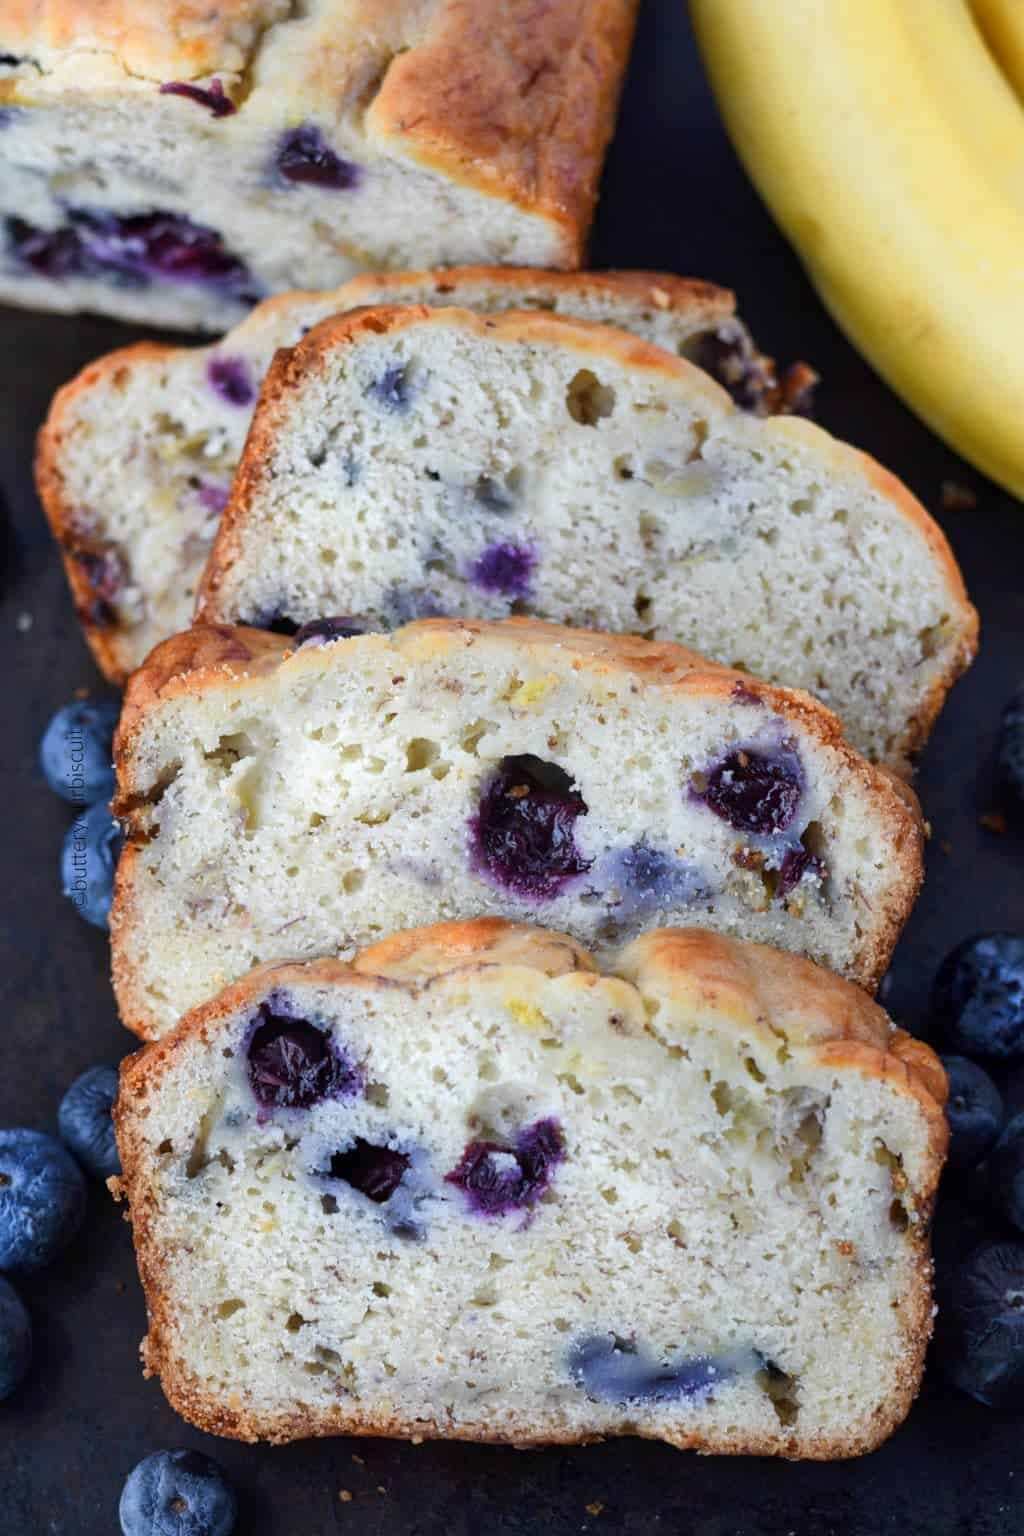 Banana blueberry bread with cream cheese butter your biscuit banana blueberry cream cheese bread on a cutting board scliced forumfinder Image collections